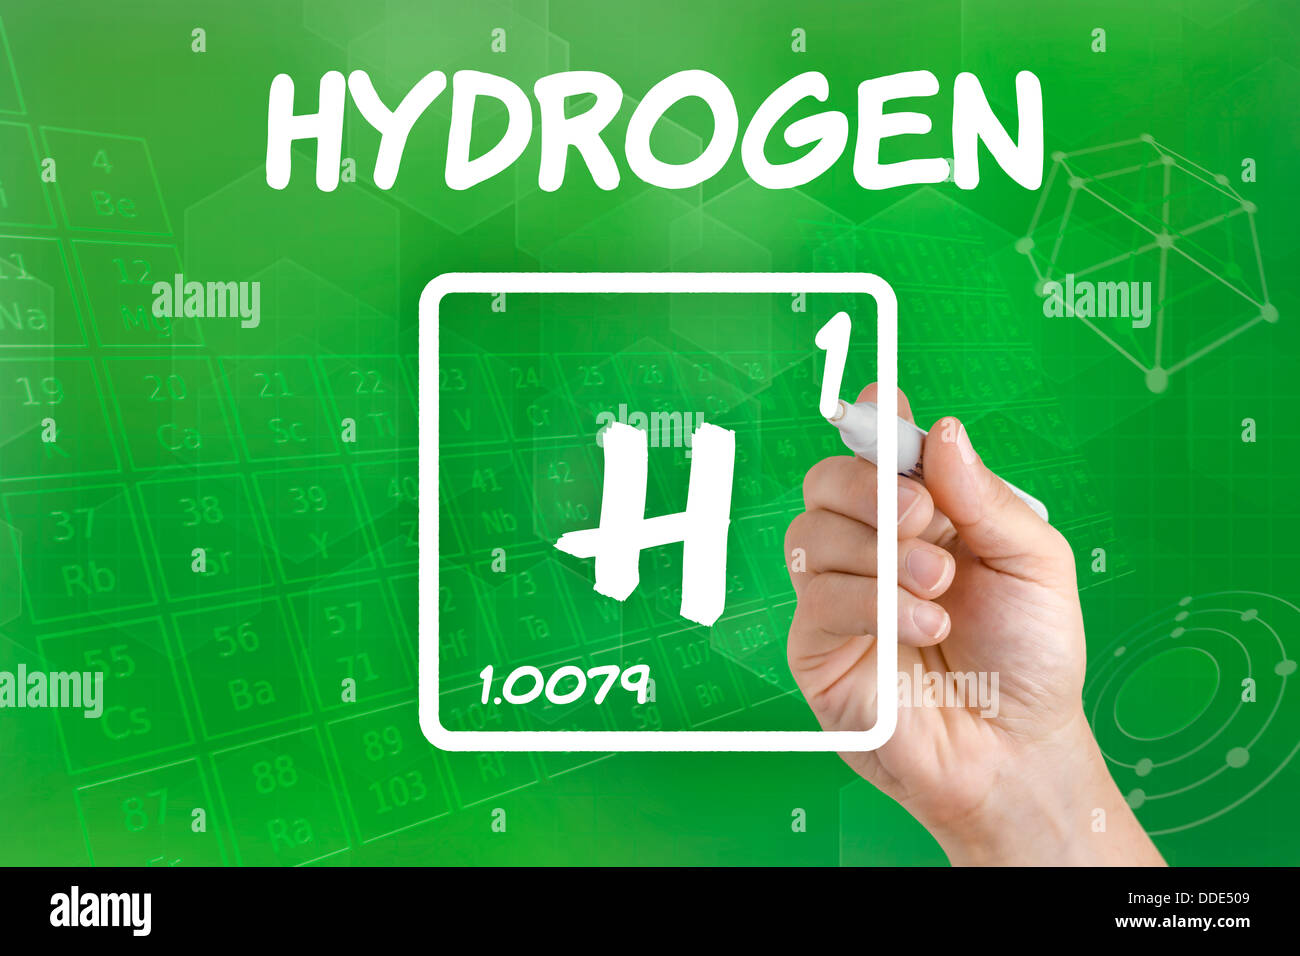 Hydrogen chemical element periodic table stock photos hydrogen symbol for the chemical element hydrogen stock image urtaz Images